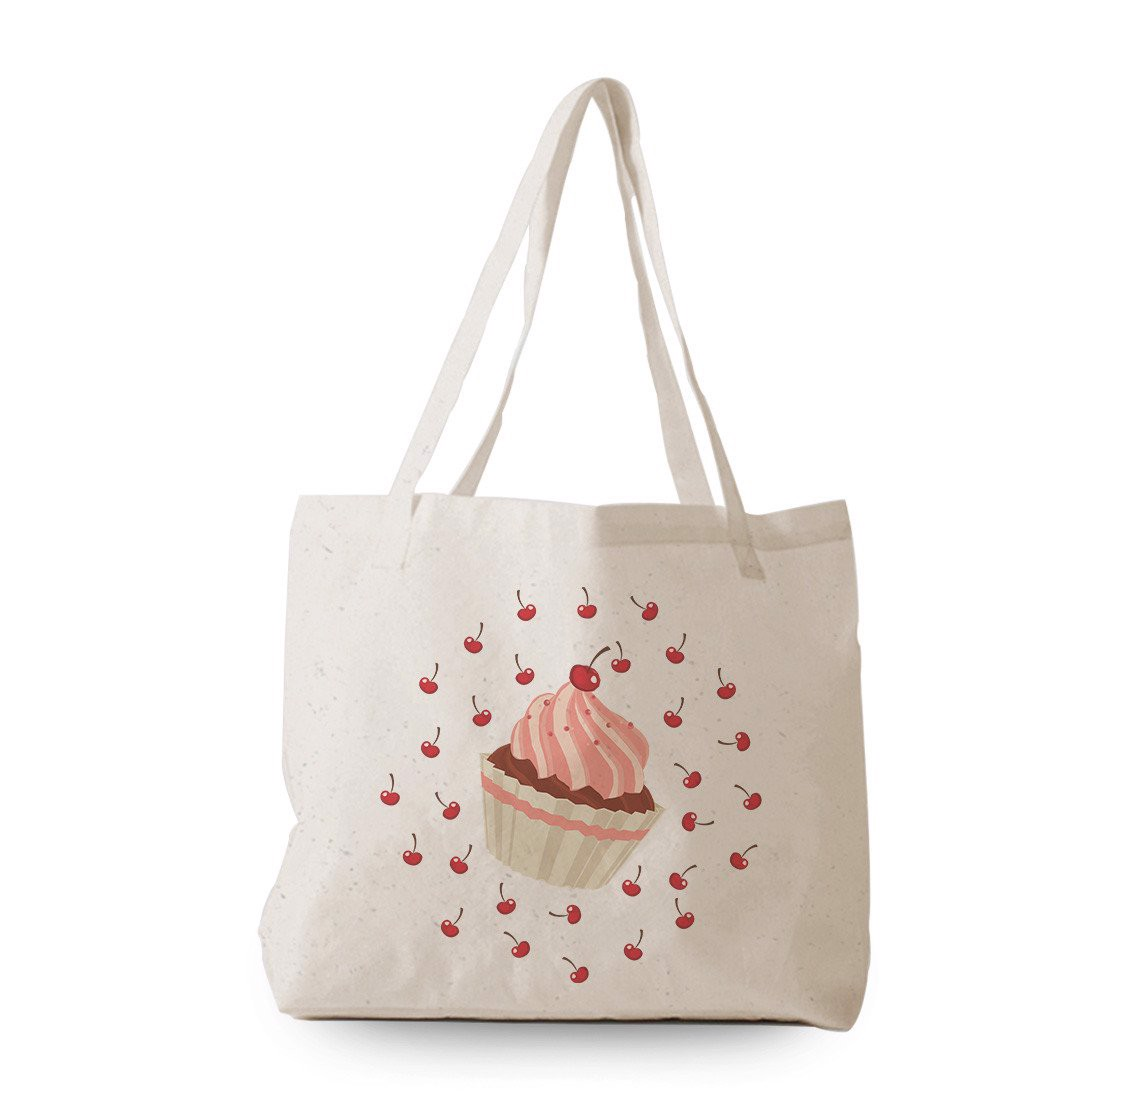 Tote Bag - I'm sweet enough